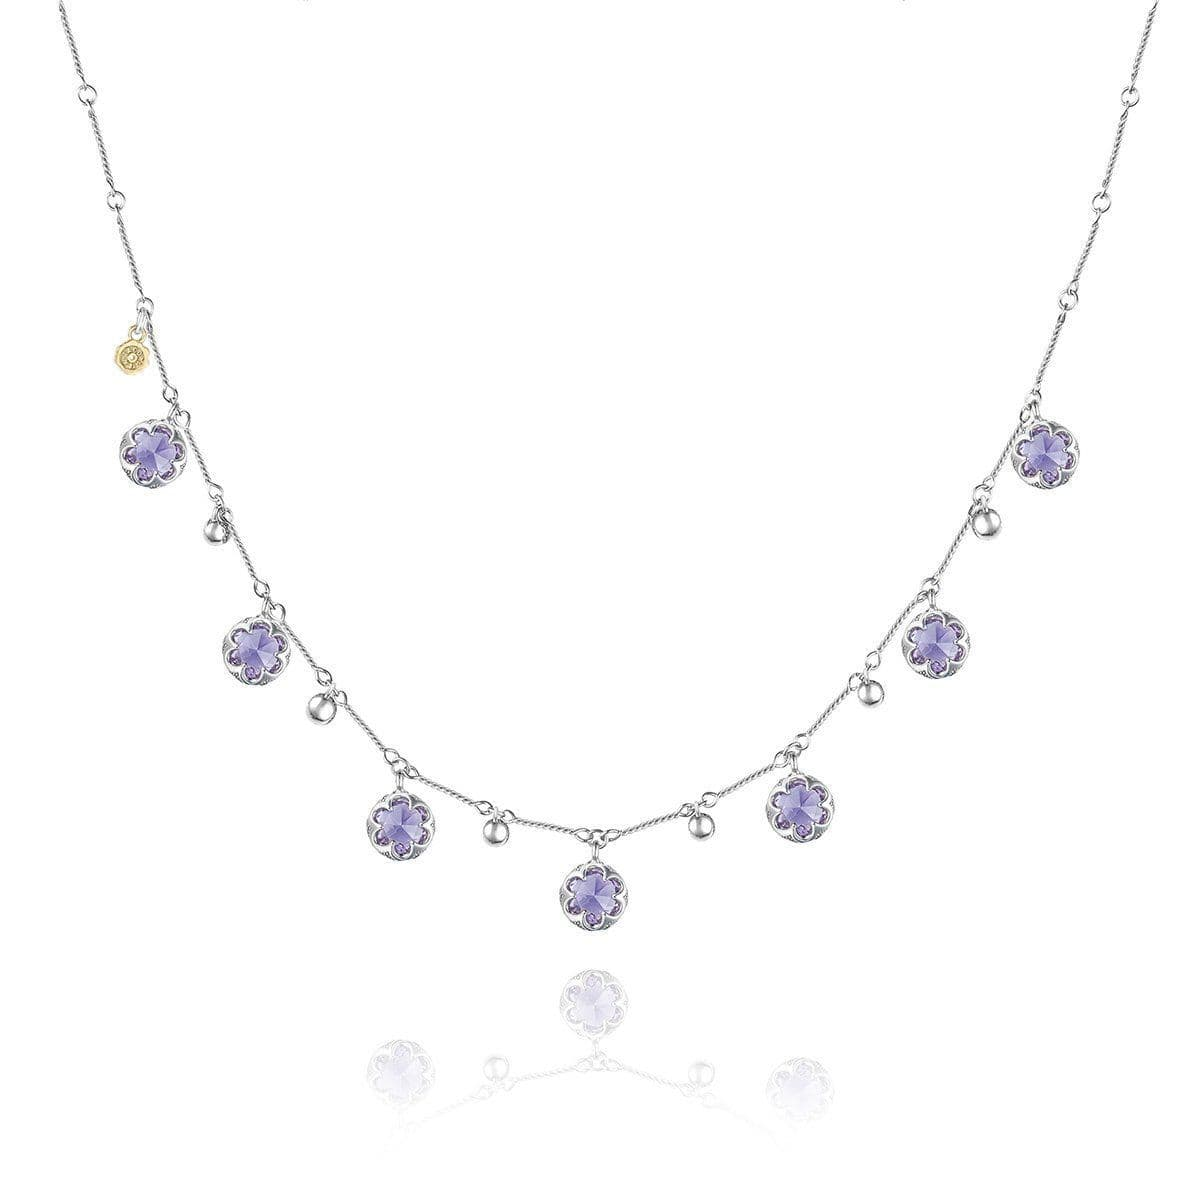 Multi-Gem Drop Necklace with Amethyst - SN20501-Tacori-Renee Taylor Gallery